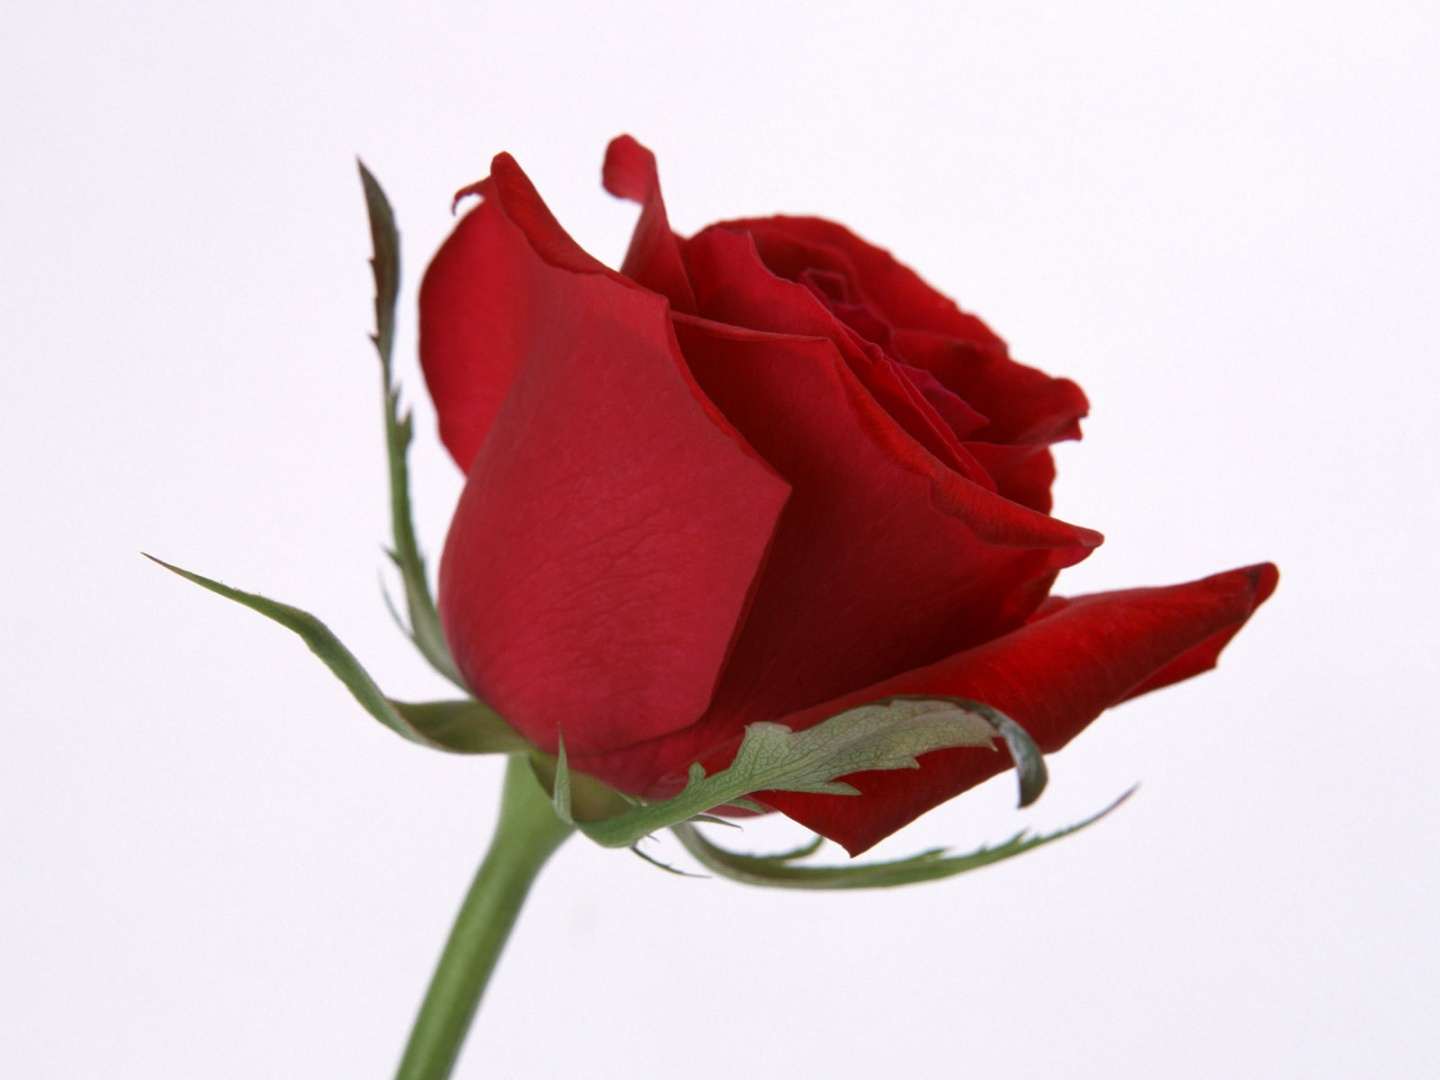 http://3.bp.blogspot.com/-oKZIGzxMB_0/T6aKXDpWz0I/AAAAAAAAU-o/SMPg164A06Y/s1600/Single-Red-Rose-Flower-Wallpaper.jpg